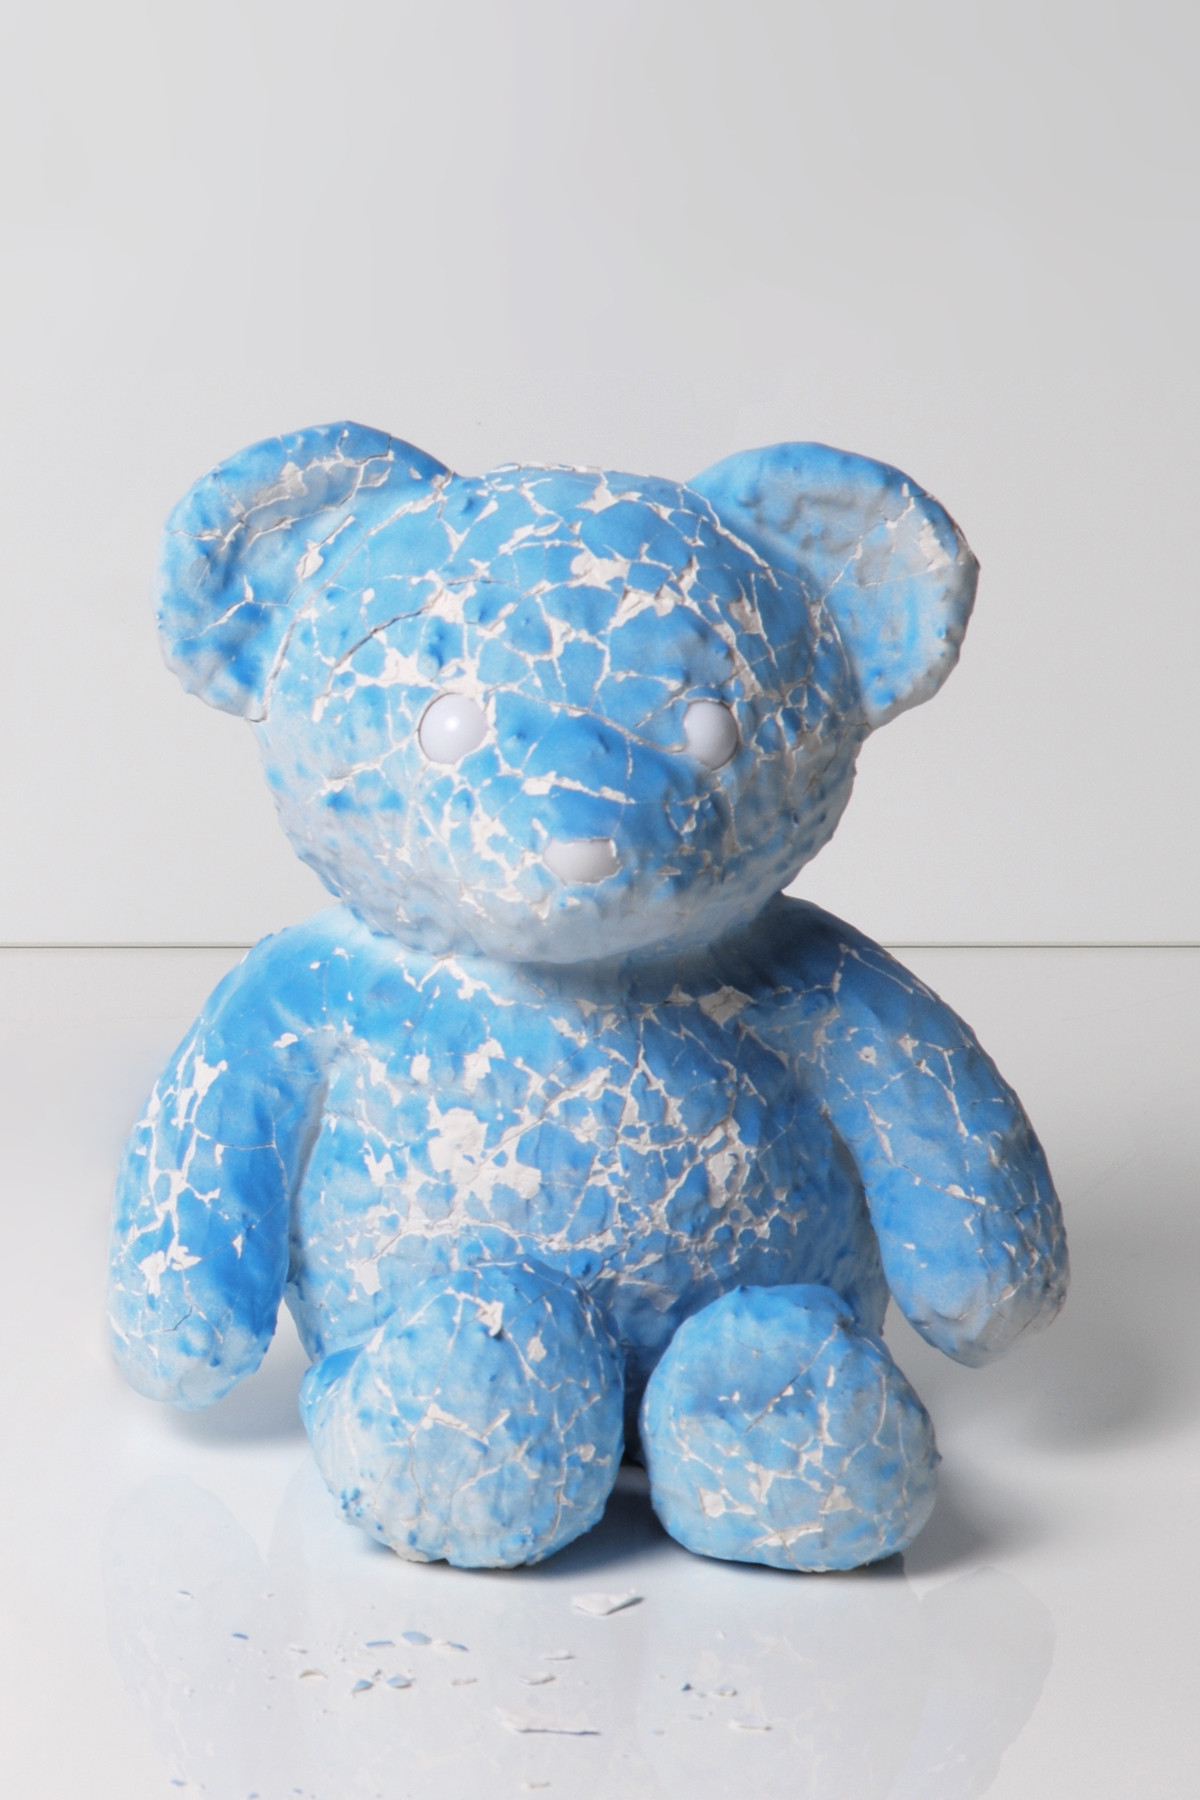 https---hypebeast.com-image-2018-08-daniel-arsham-cracked-bear-edition-launch-14